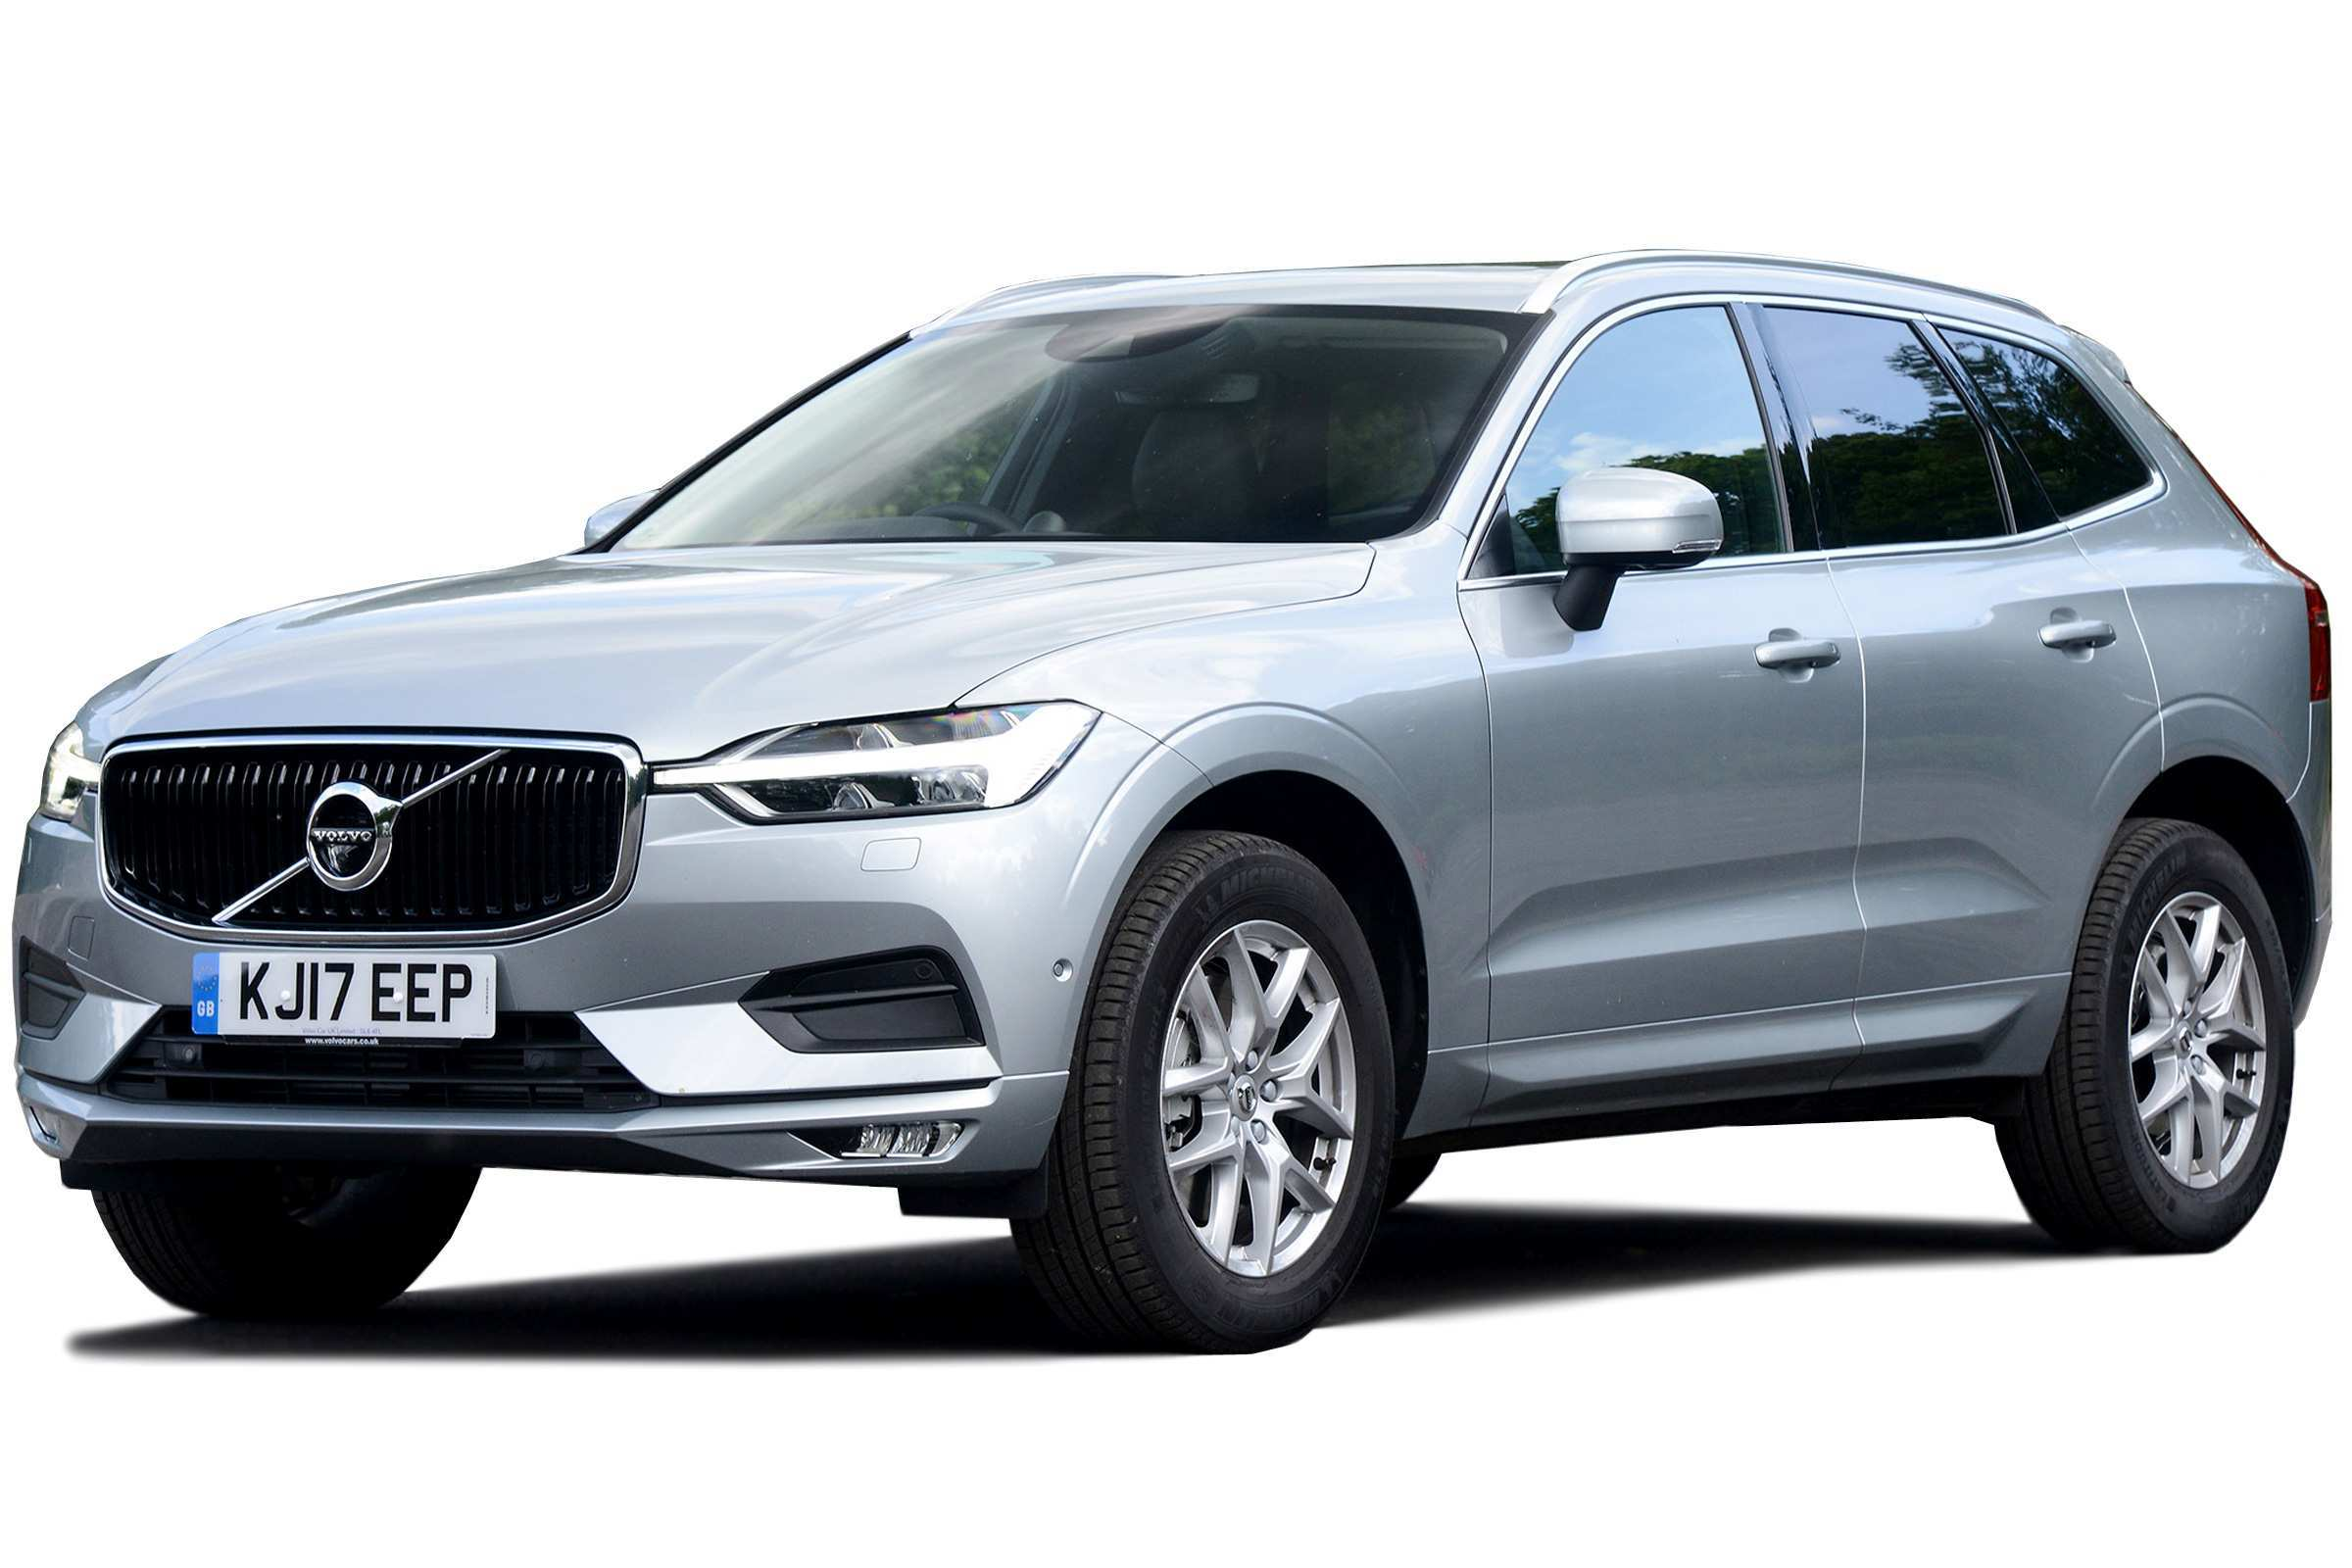 17 Gallery of Volvo Xc60 2019 Manual Spesification for Volvo Xc60 2019 Manual